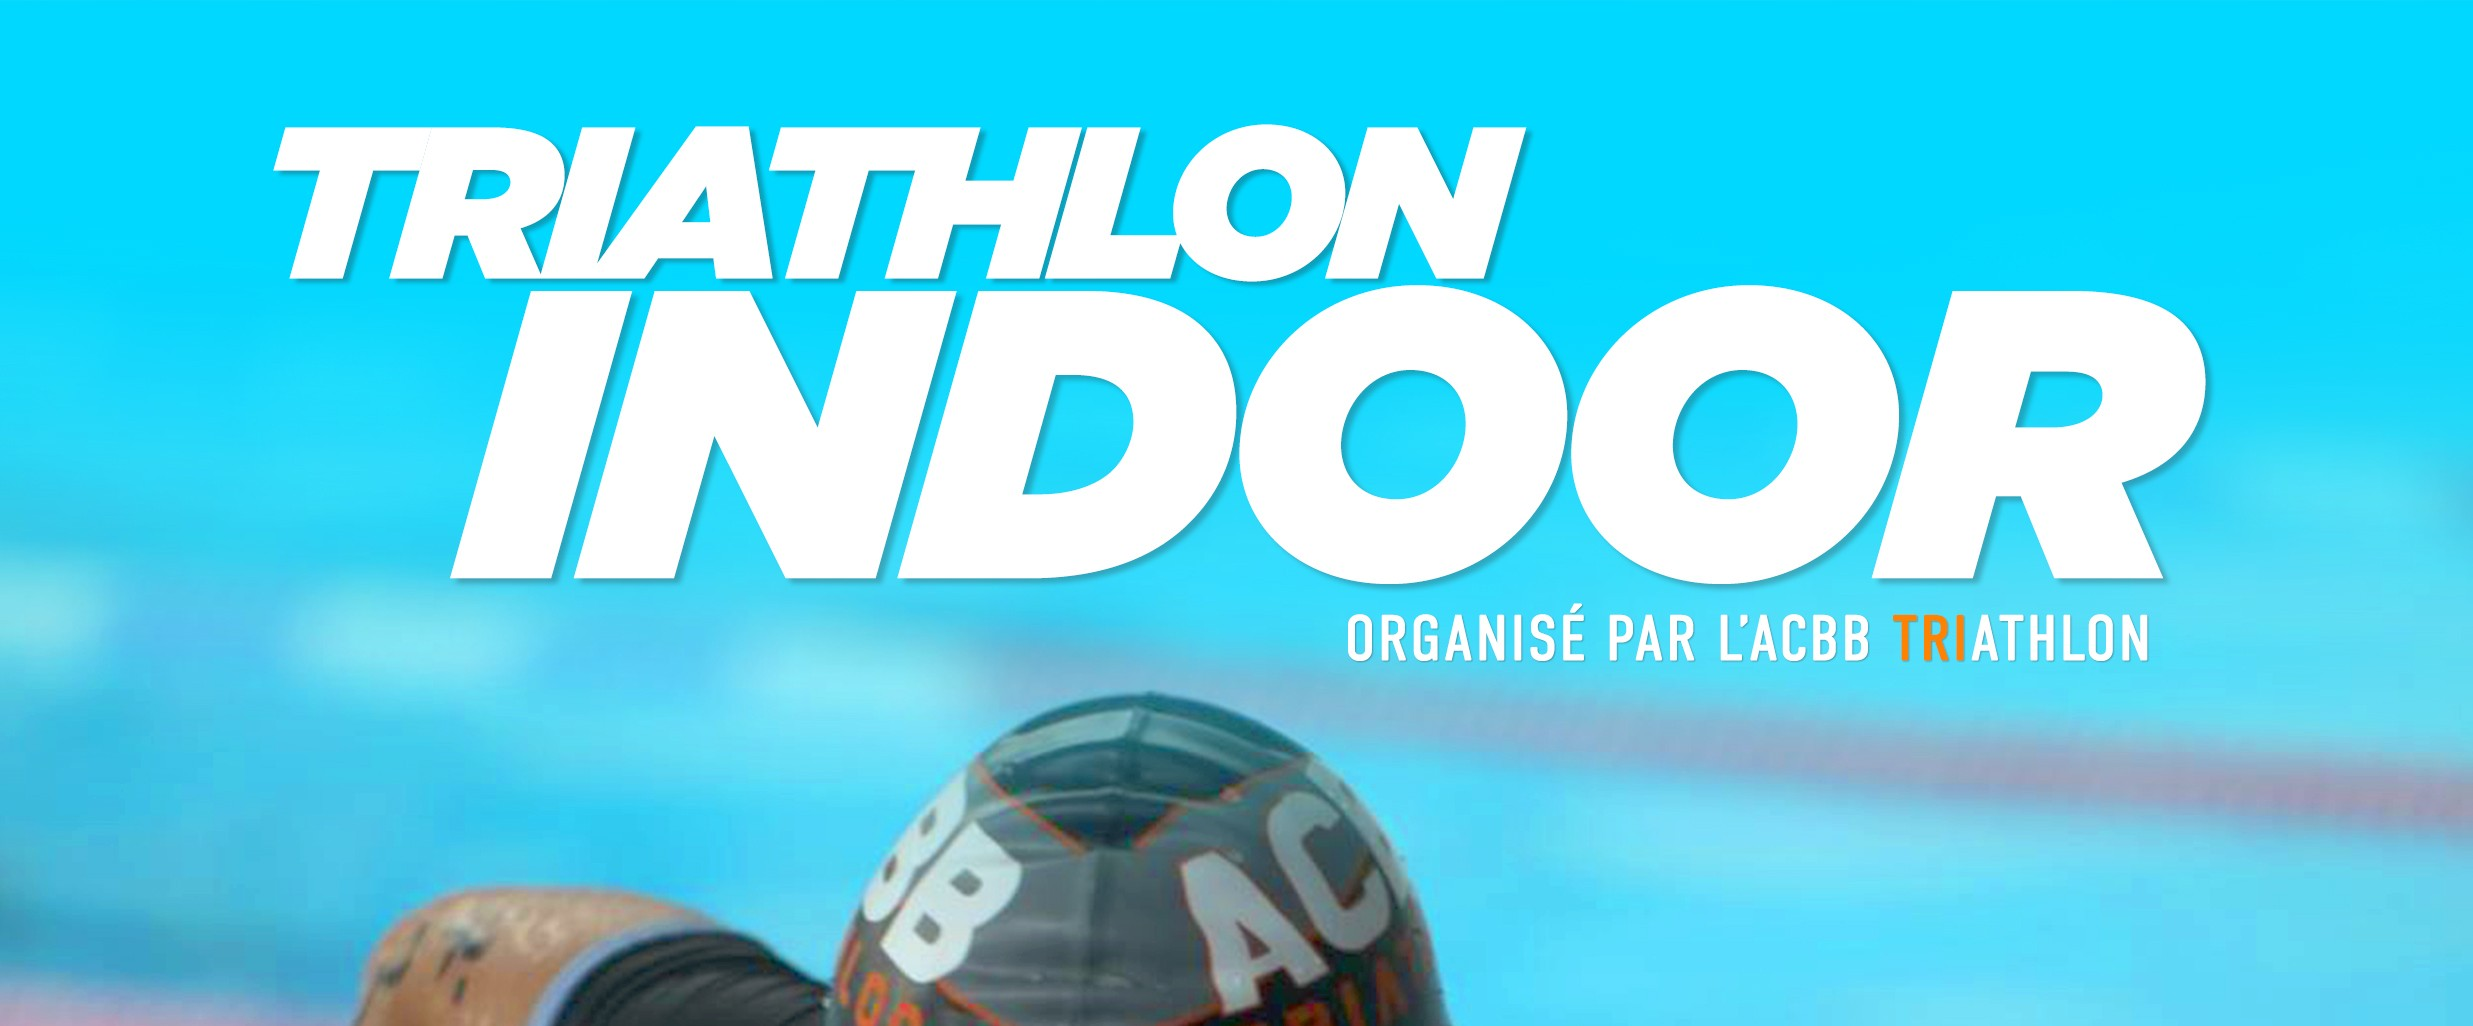 Triathlon Indoor 2020 - samedi 25 avril 2020